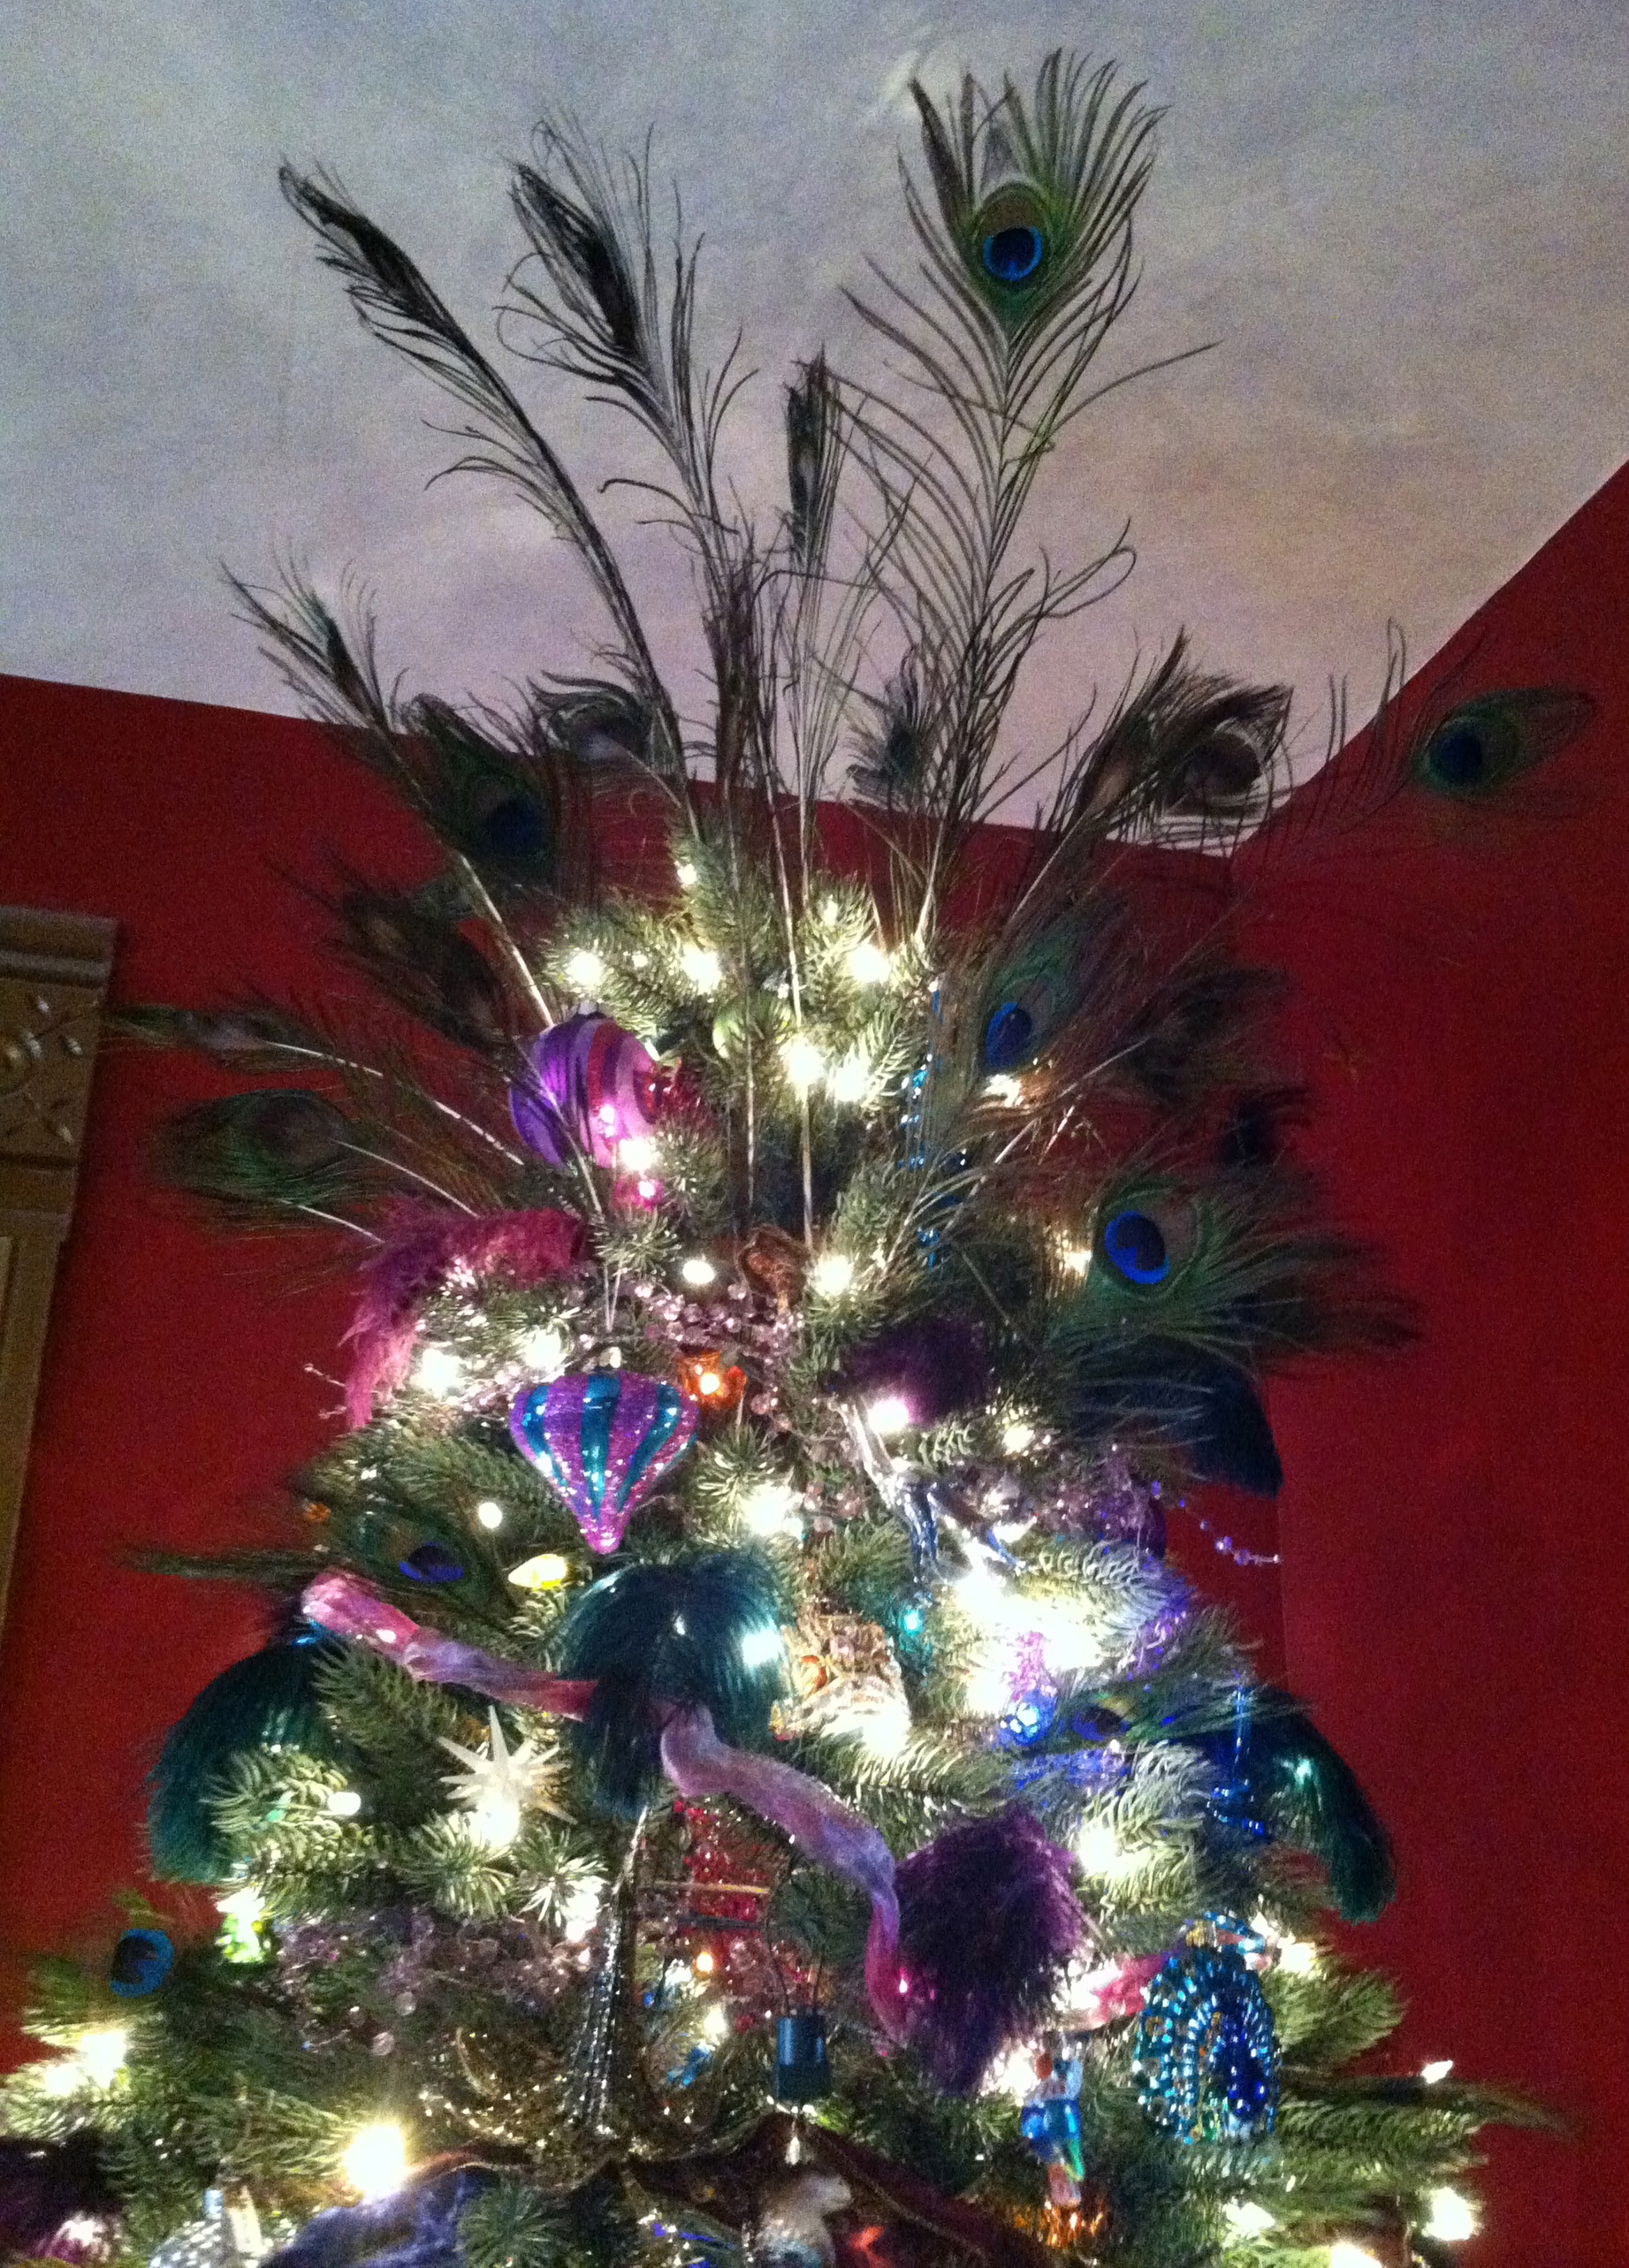 How to Trim Your Christmas Tree Like a Proand Some Unusual and Cheap Holiday Tree Decorating